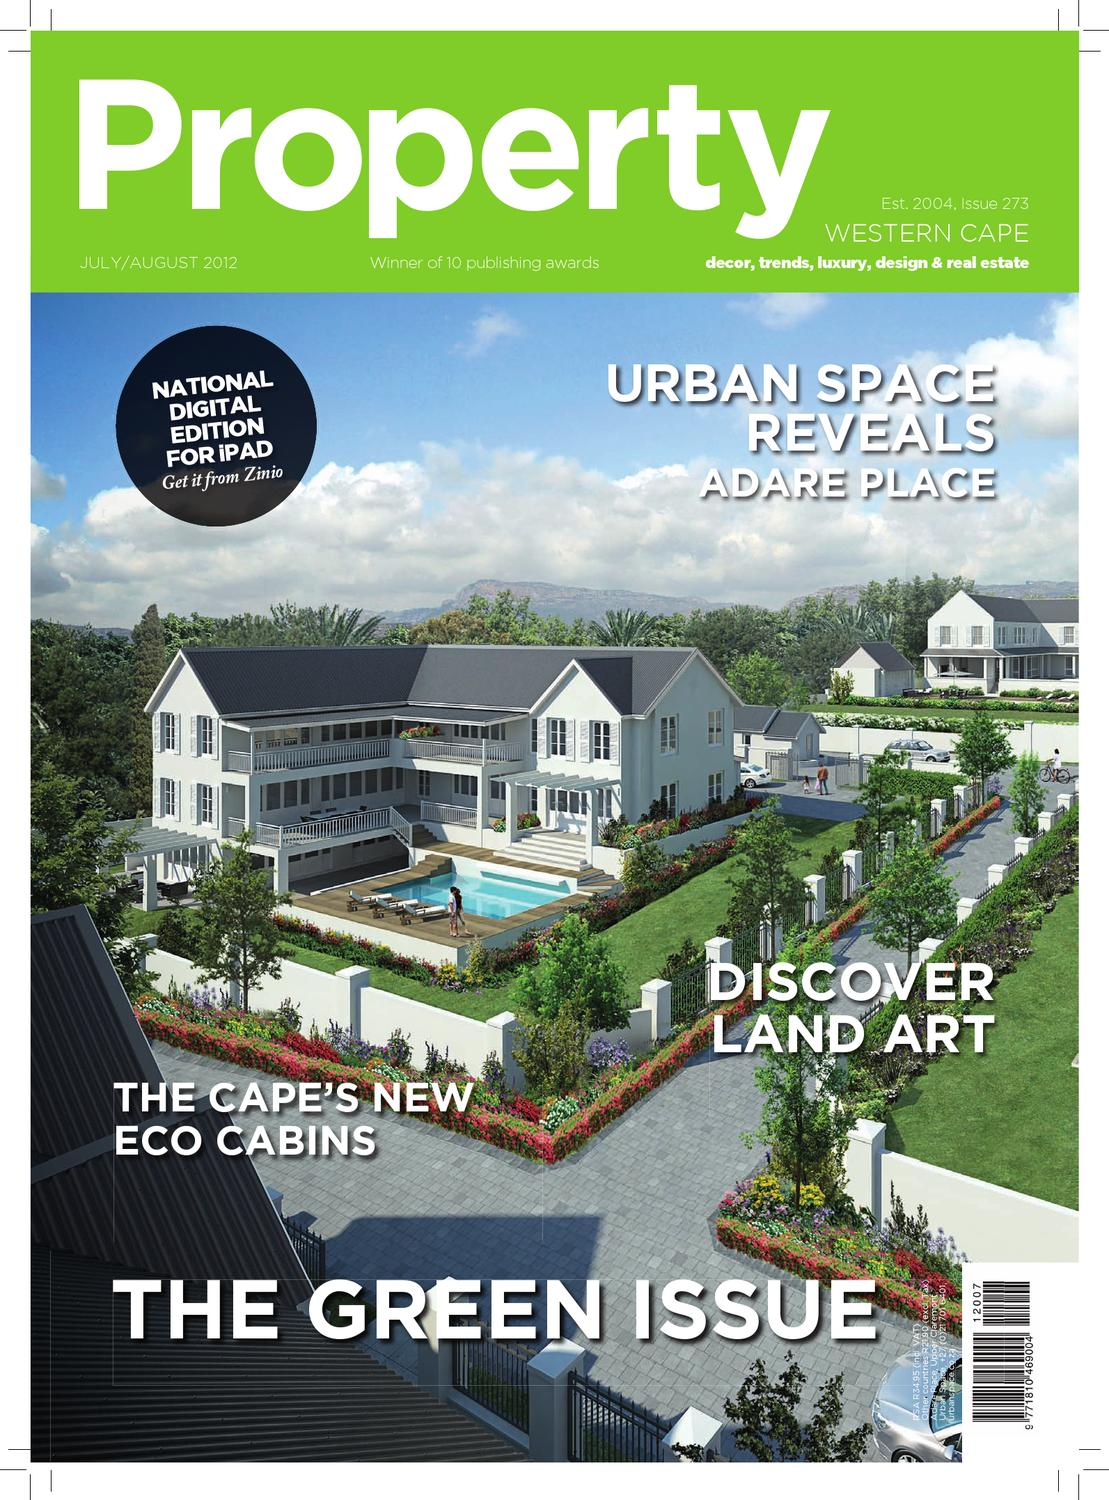 The Property Magazine - Western Cape July/August 2012 by